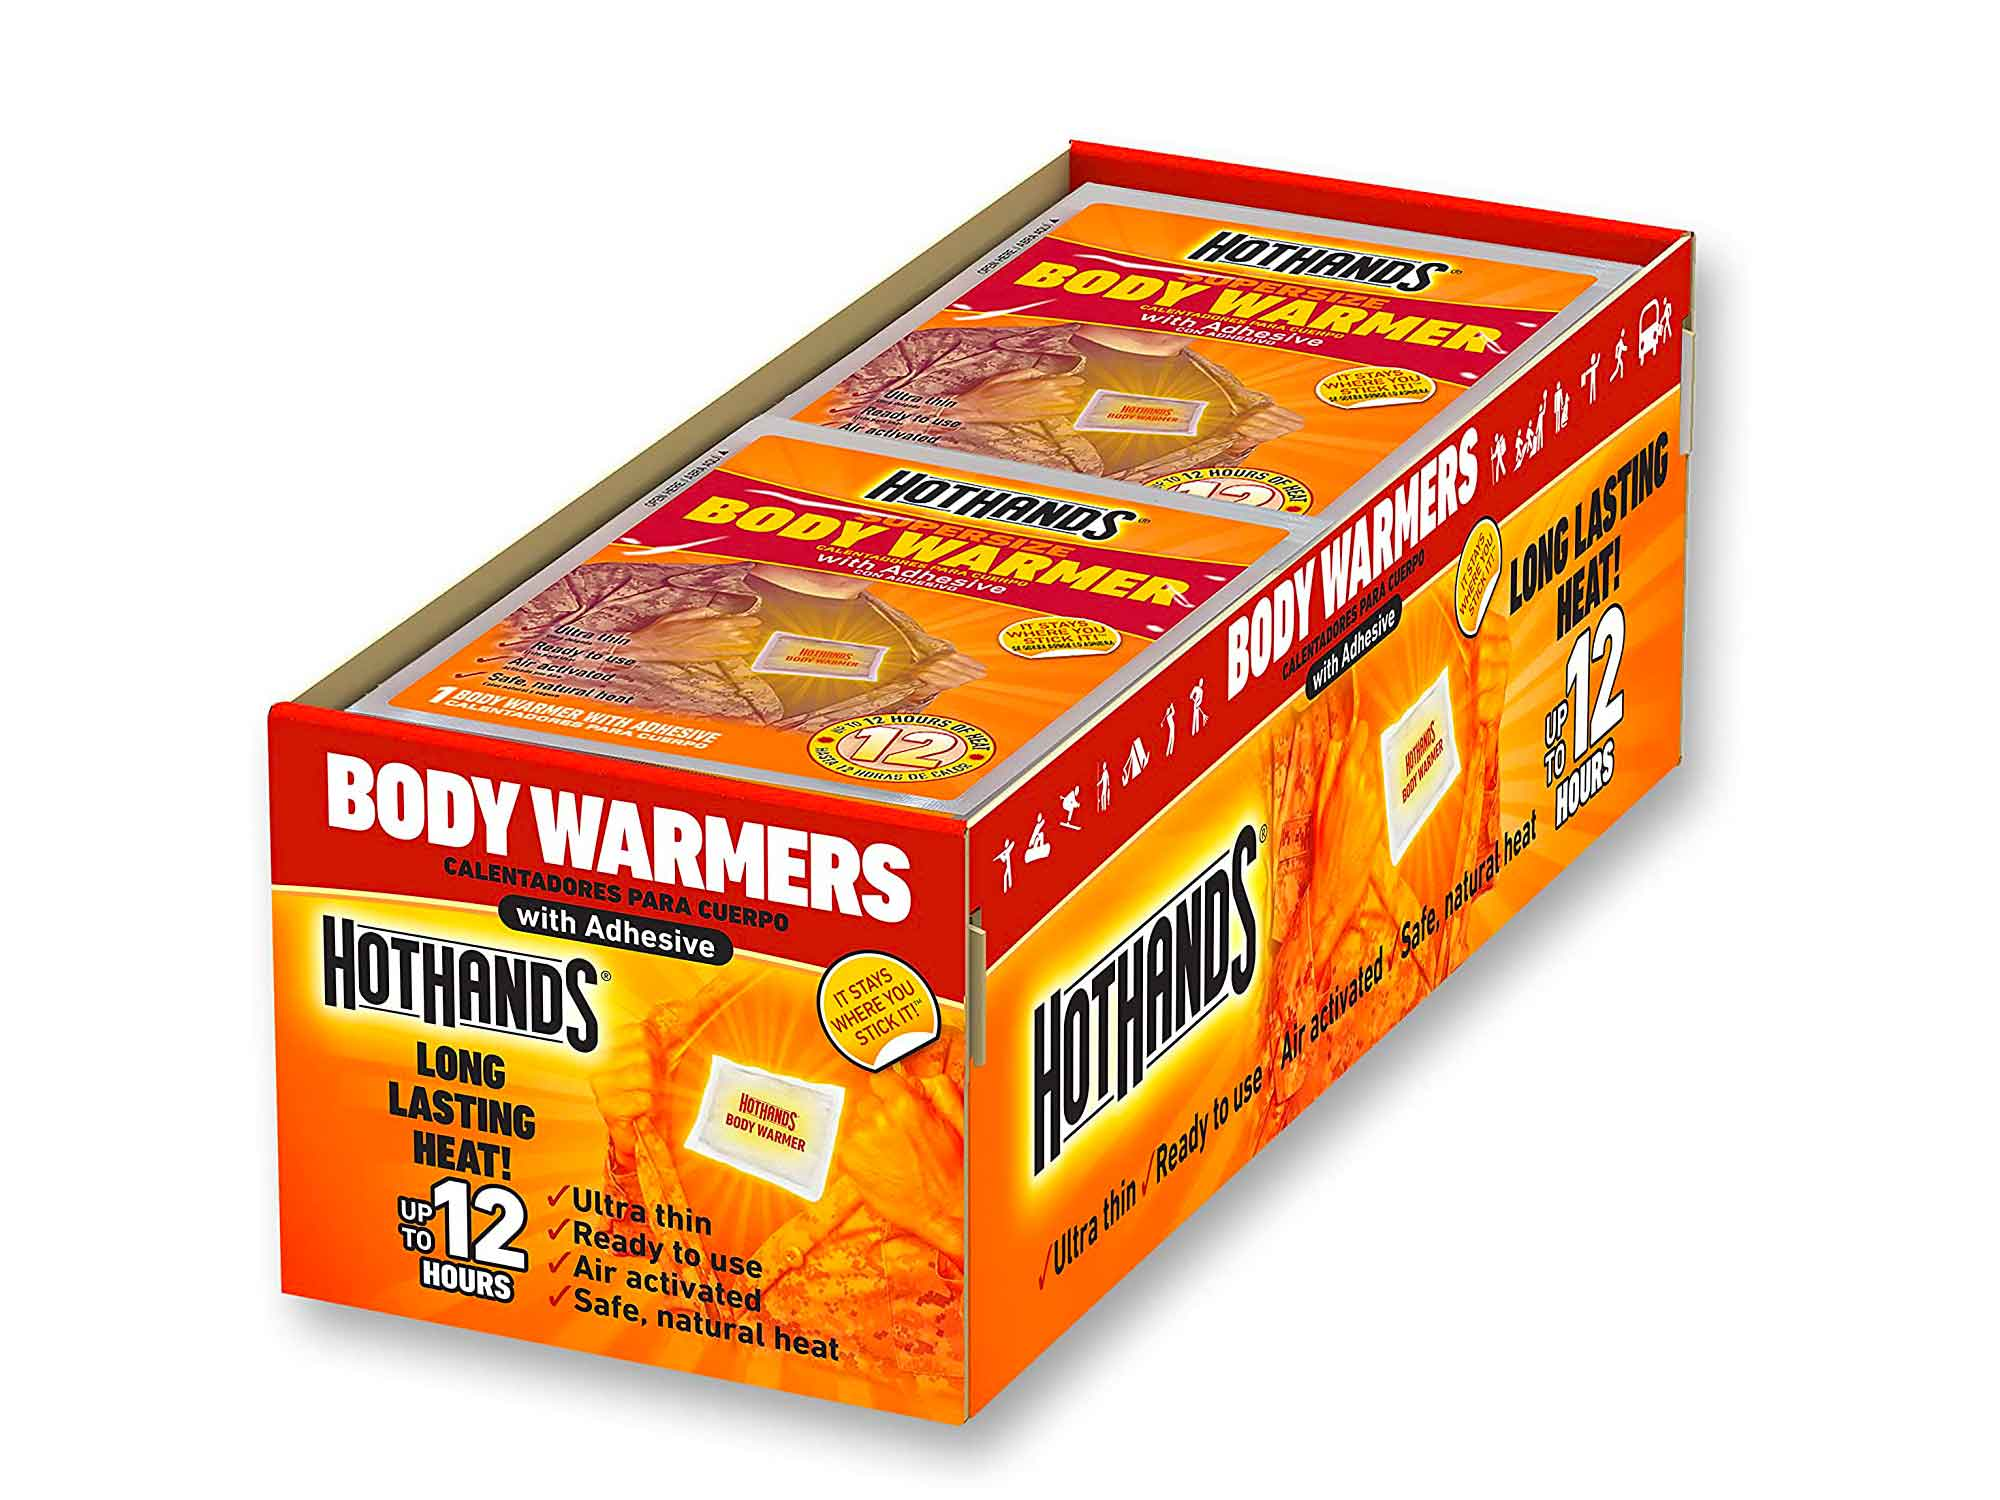 Body Warmers by Hot Hands